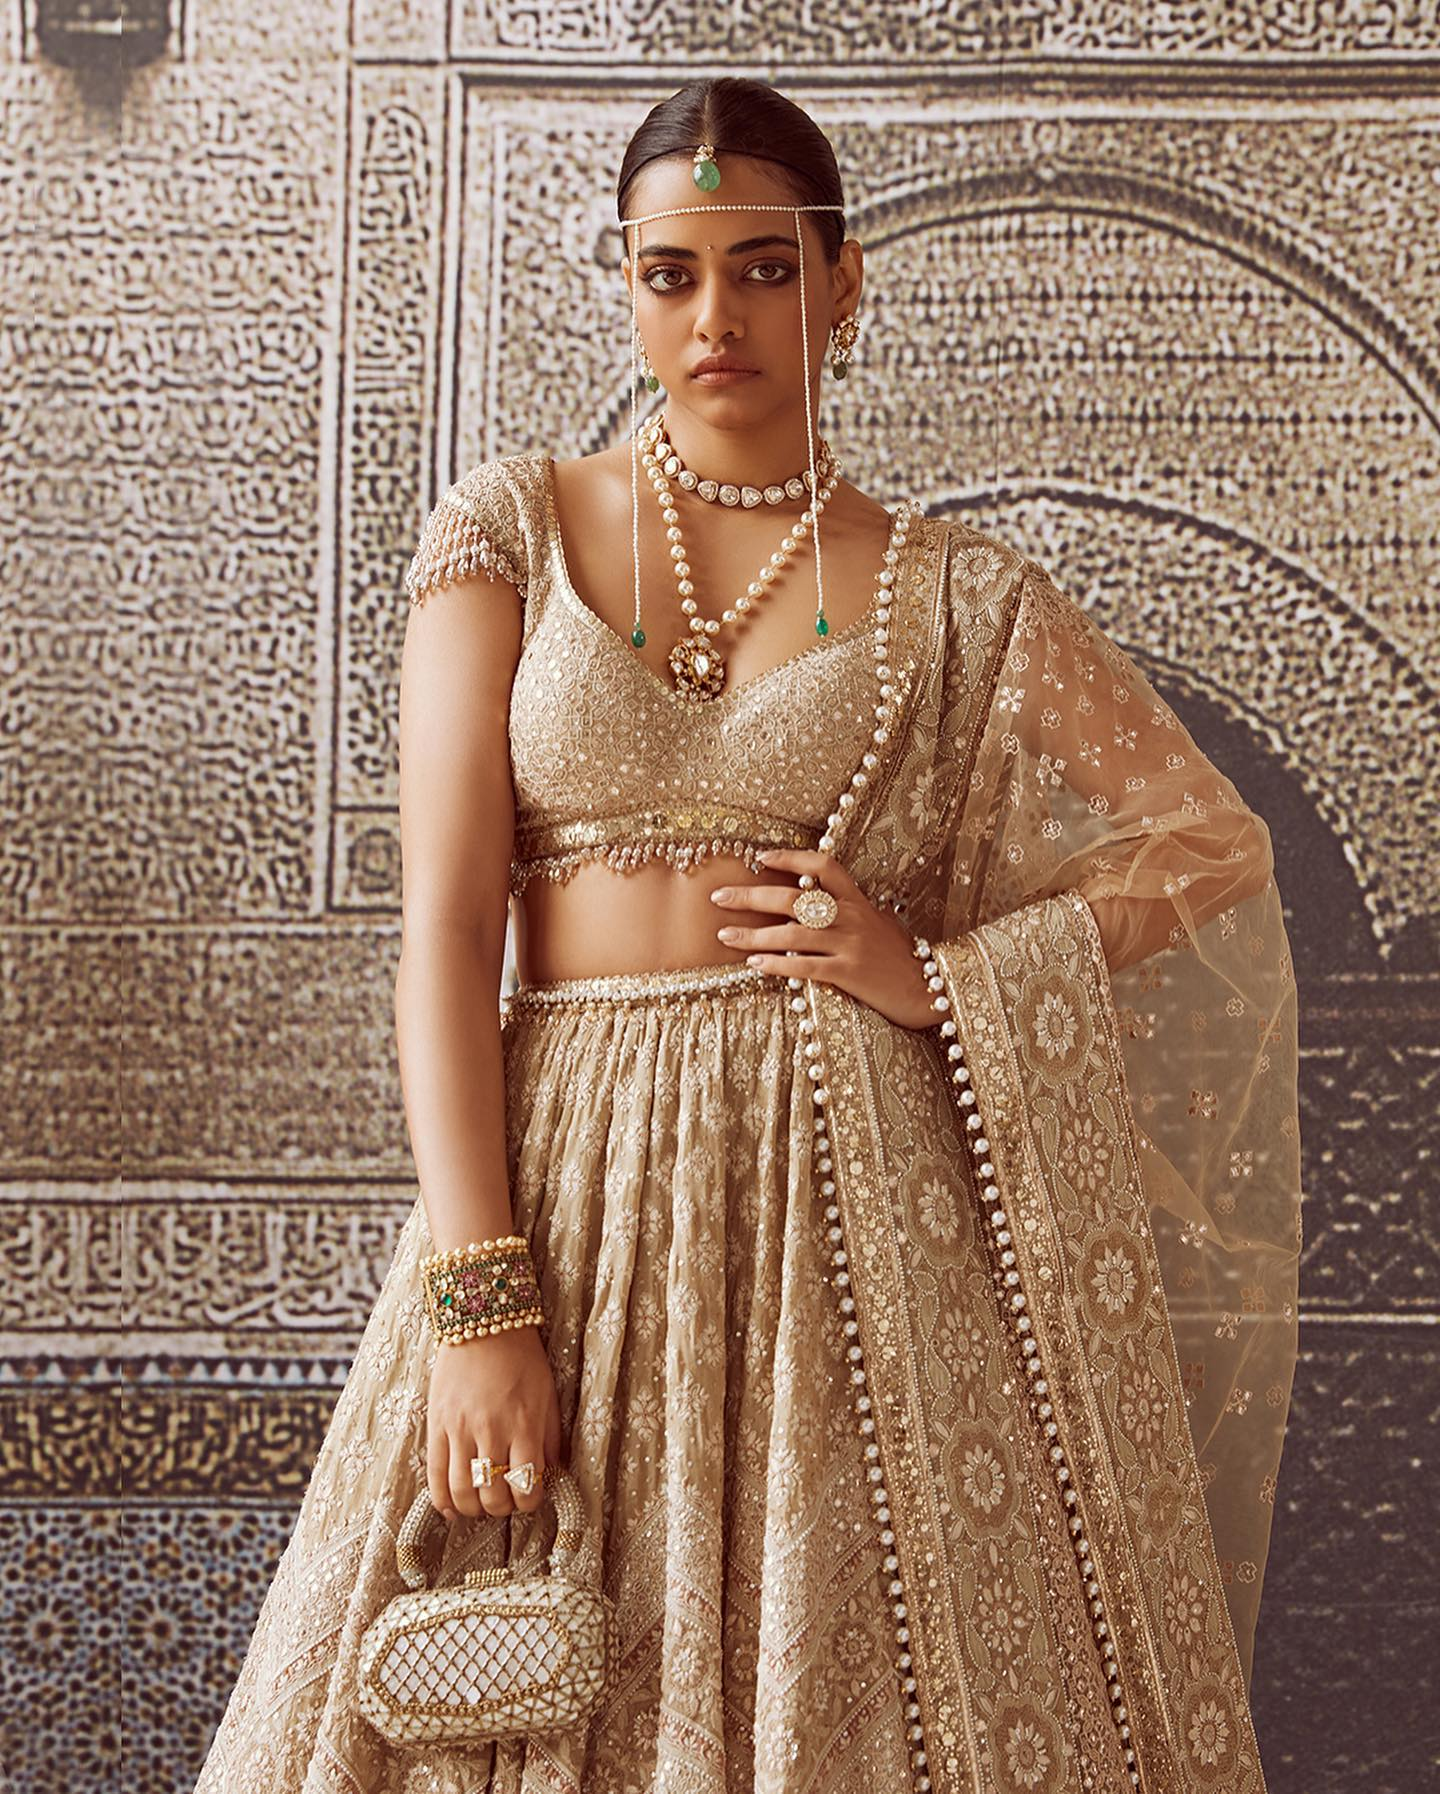 Priyadarshini is wearing 16 kalis chikankari  lehenga made in a muted colour palette of ivory punctuated with shades of ecru dusty rose  and jade. It comes with a matching blouse and tulle dupatta embellished with pearls. 2021-09-02